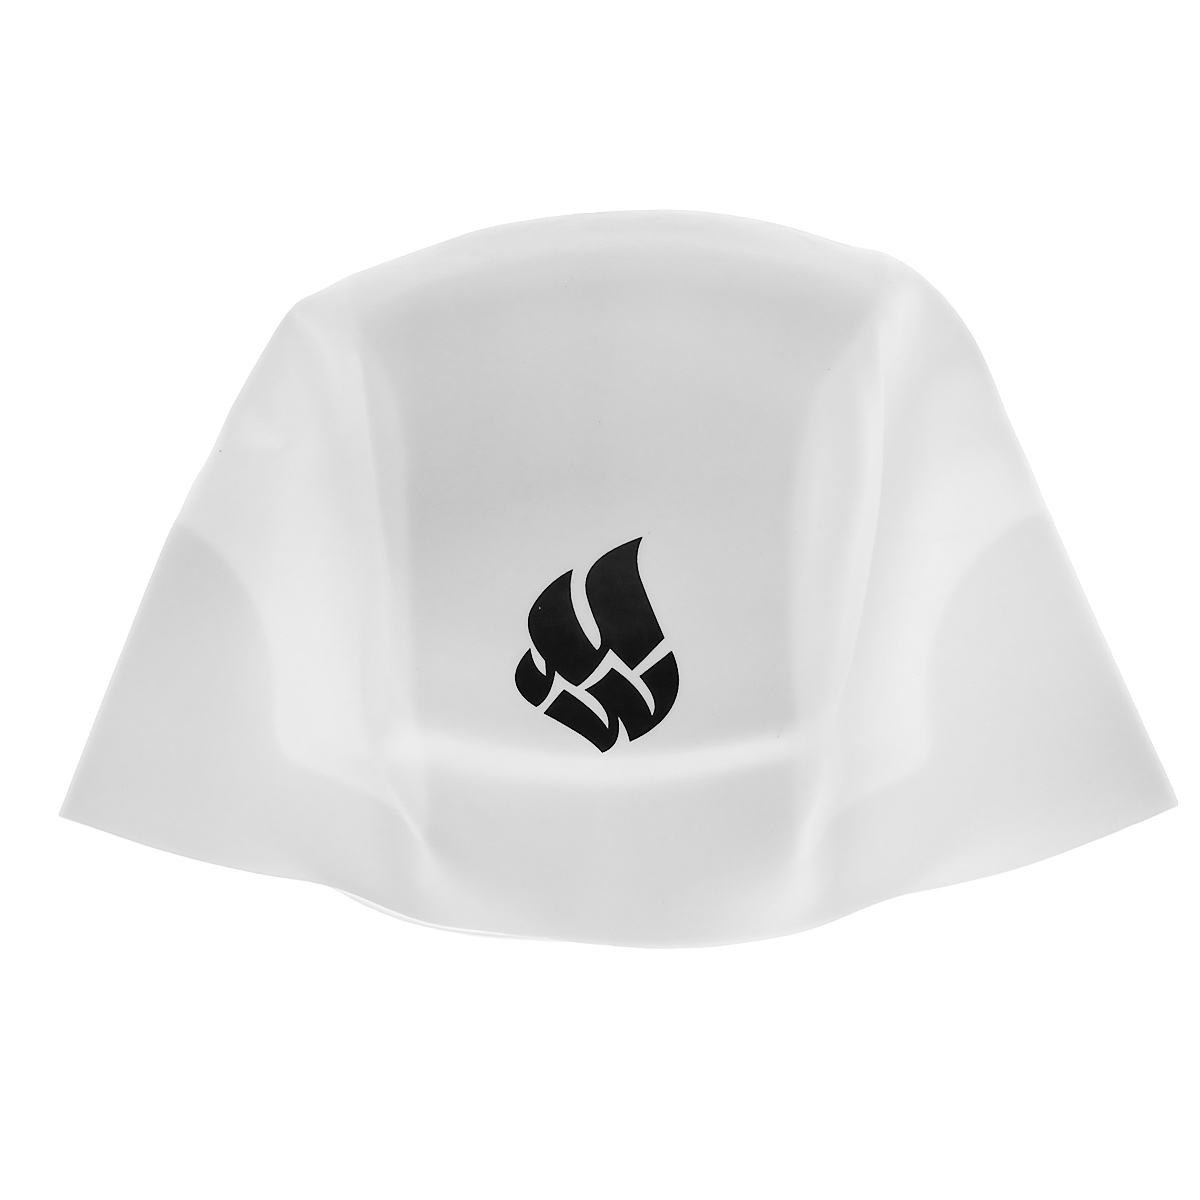 Шапочка для плавания Mad Wave R-Cap Fina Approved L, цвет: белый шапочка mad wave submarine cap silicone multi m0573 02 0 00w